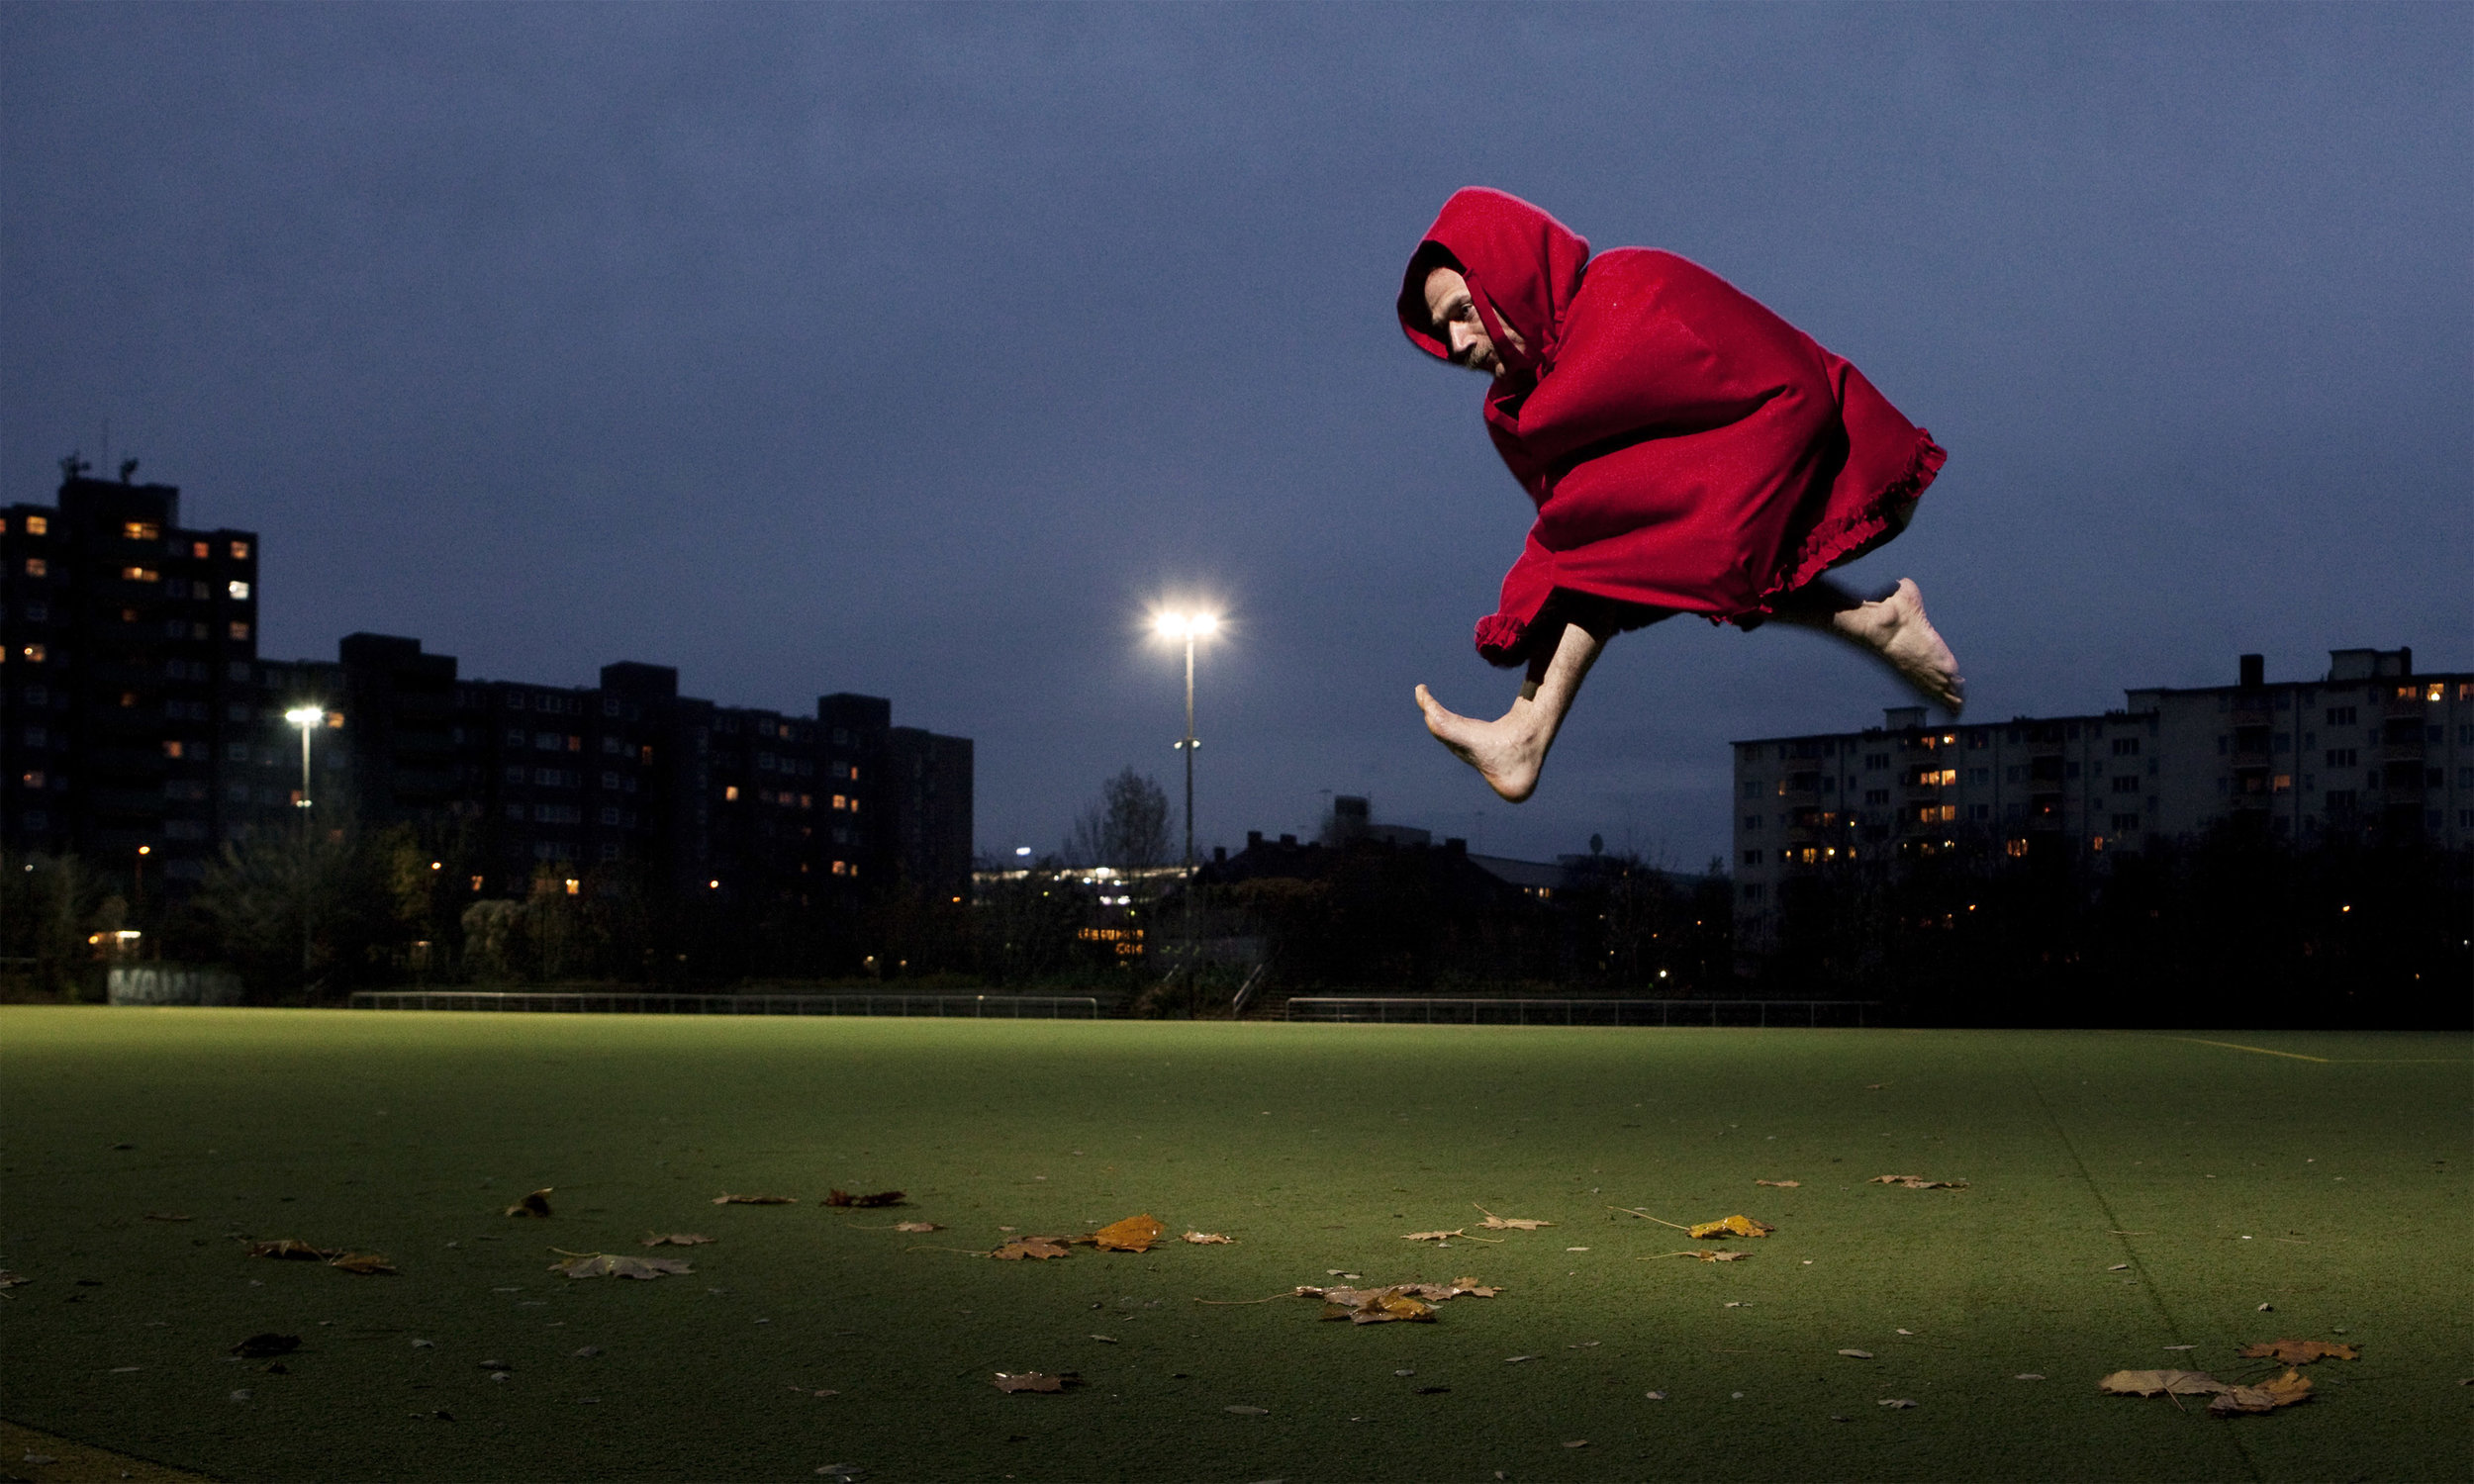 Müller, in Little Red Riding Hood cloak and bare feet, leaps over a grassy park at night. (photo: Sven Hagolani)